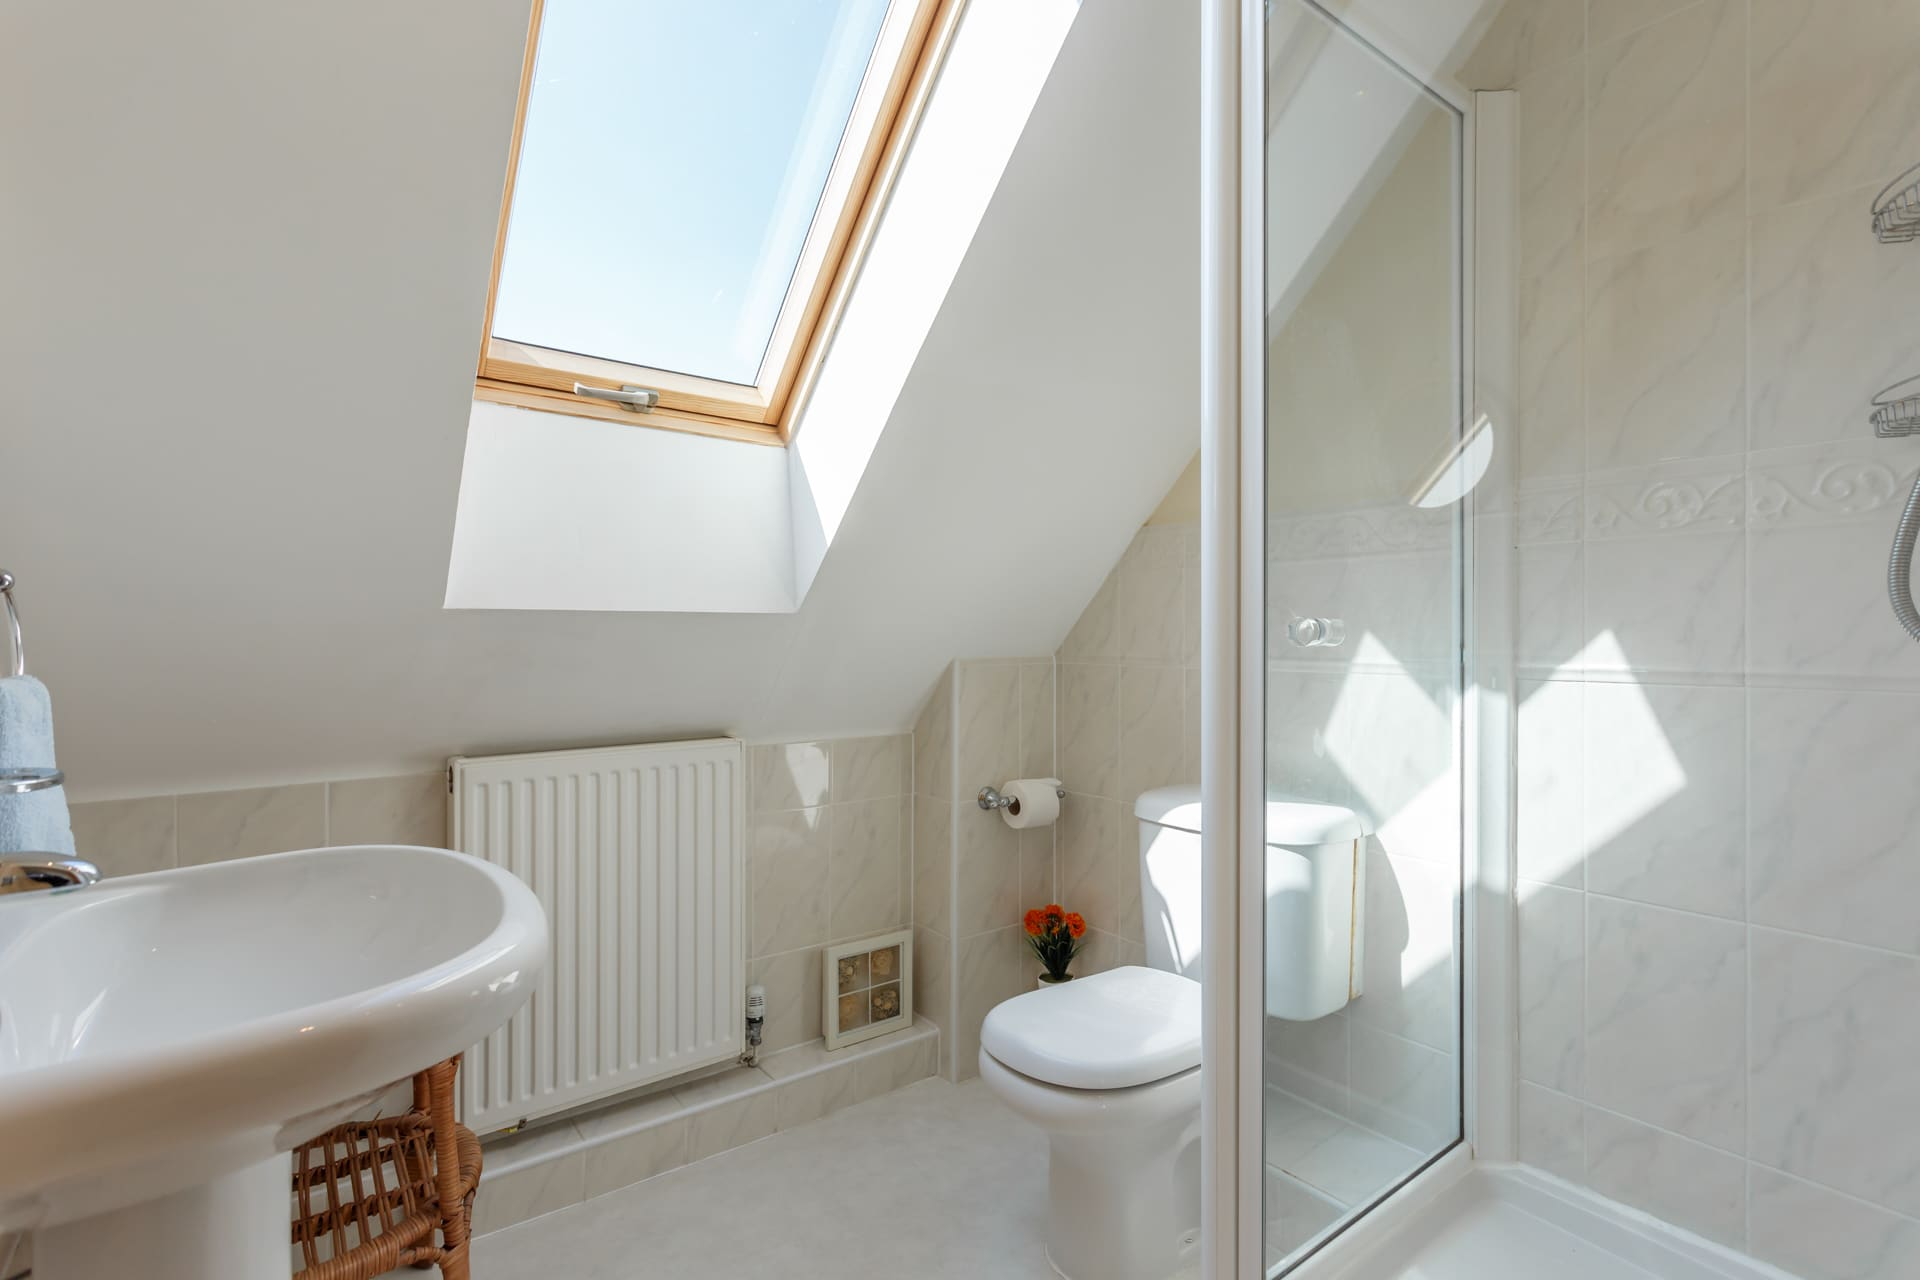 En suite shower room for master bedroom with views of Radipole Nature Reserve.